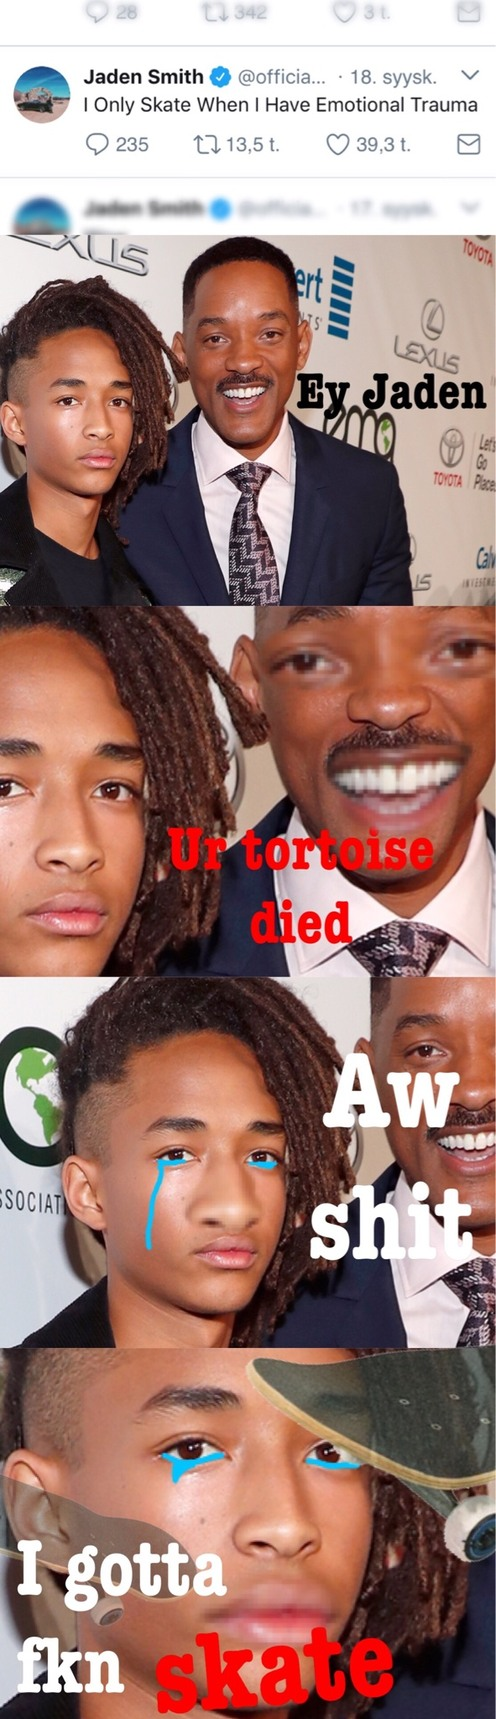 Pretty messy meme, but I just thought it was cool that Jaden is still doing these weird ass tweets